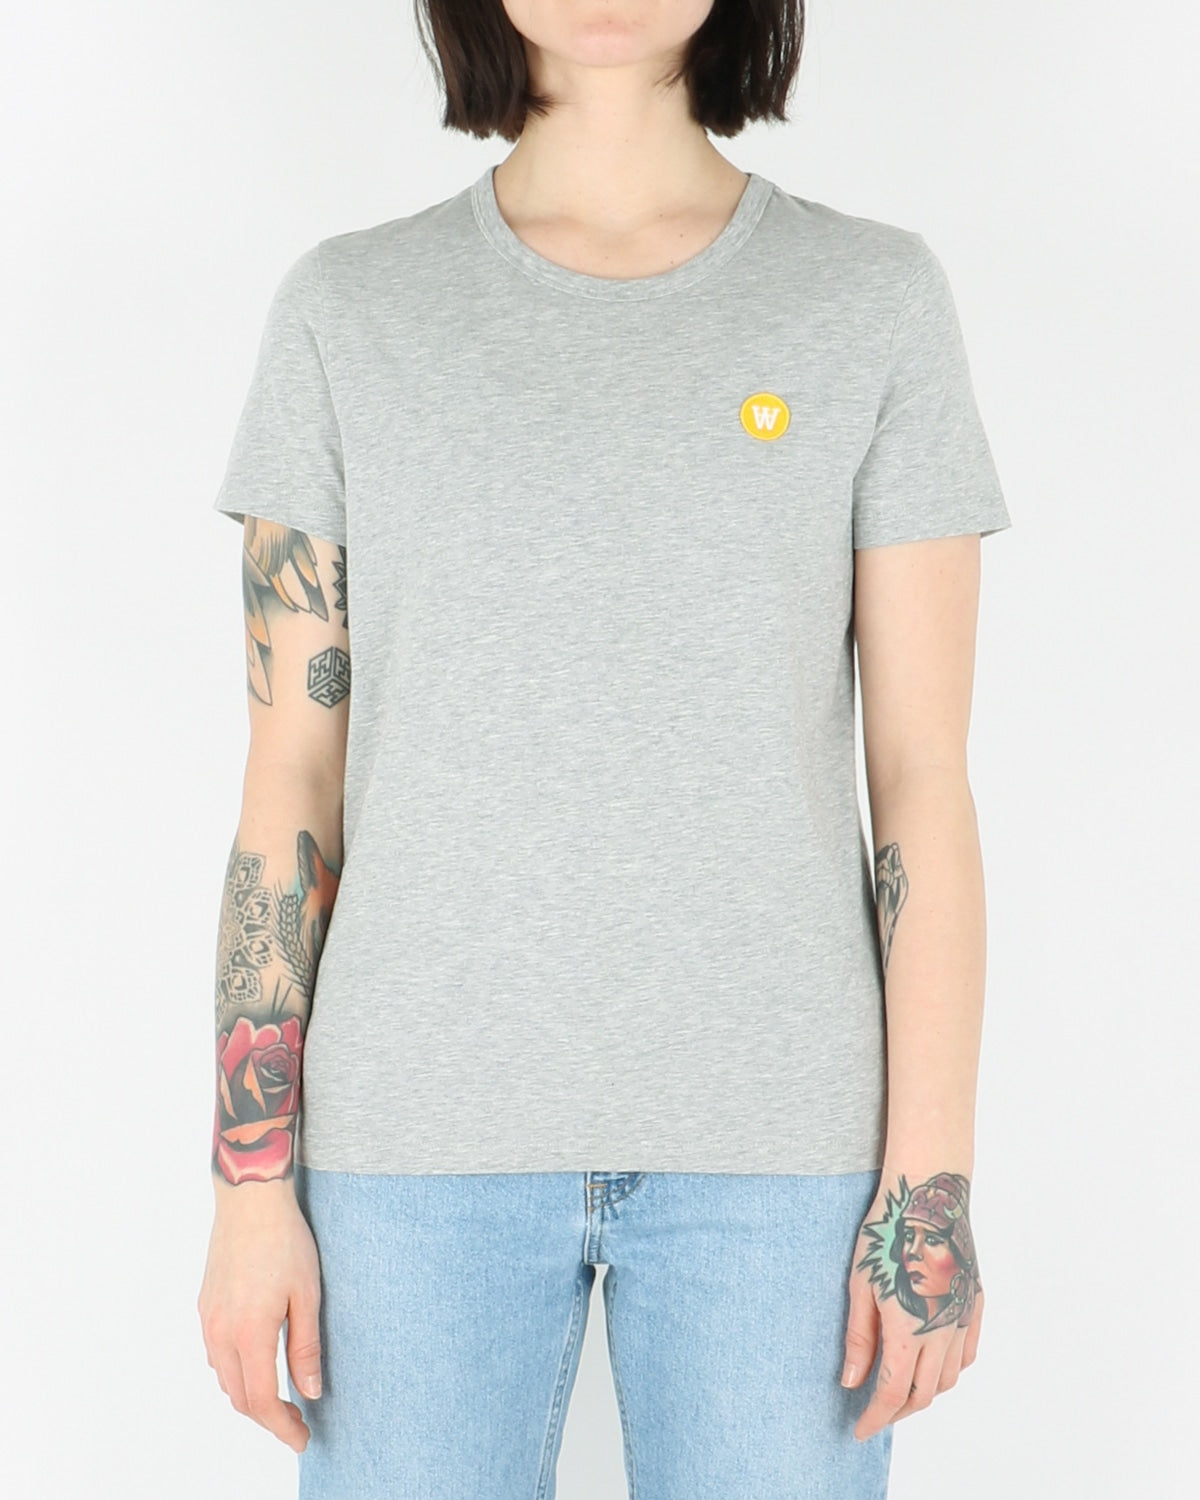 wood wood_uma t-shirt_grey melange_view_1_3